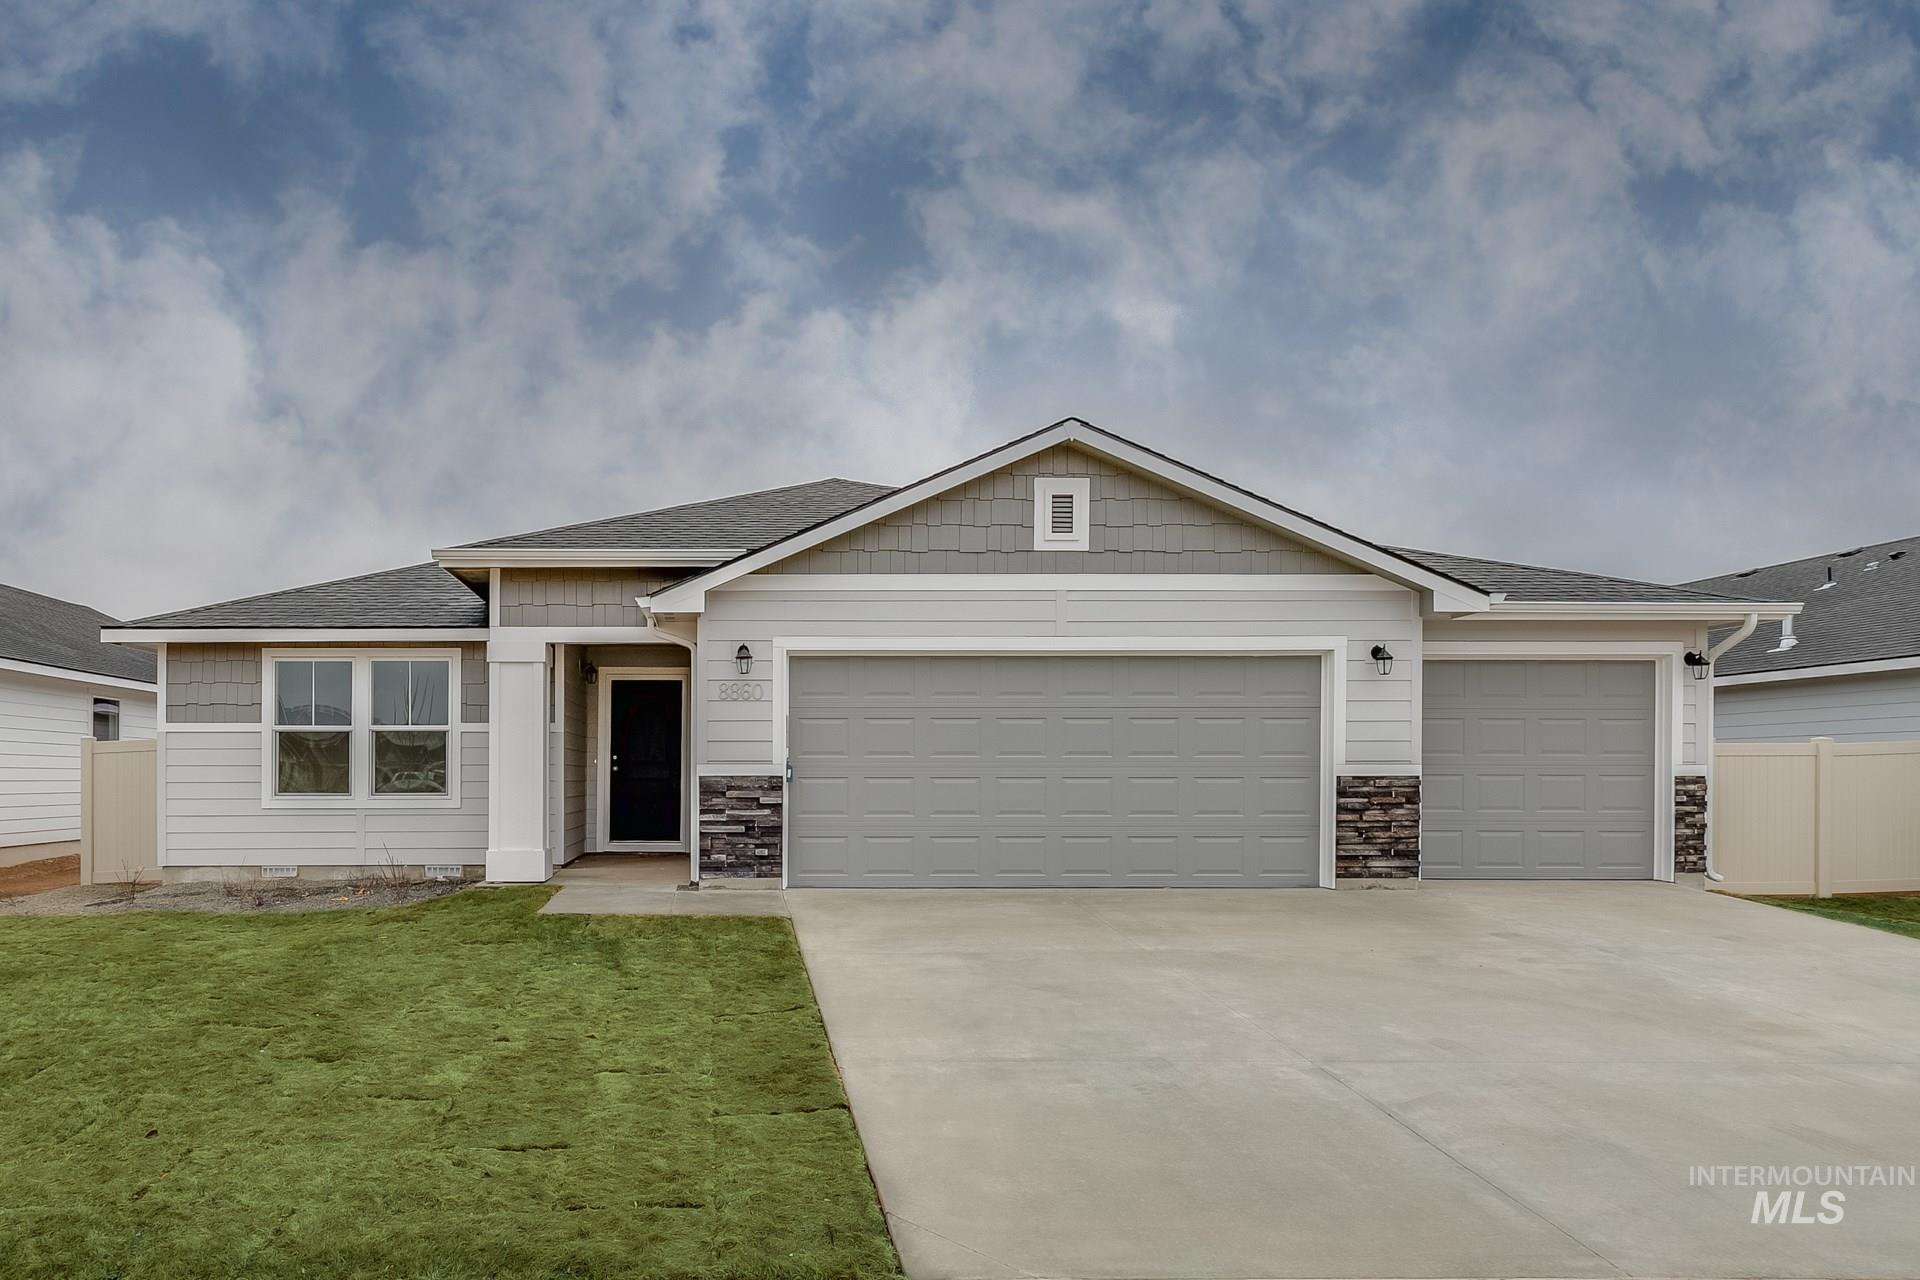 13140 S Coquille River Ave Property Photo - Nampa, ID real estate listing